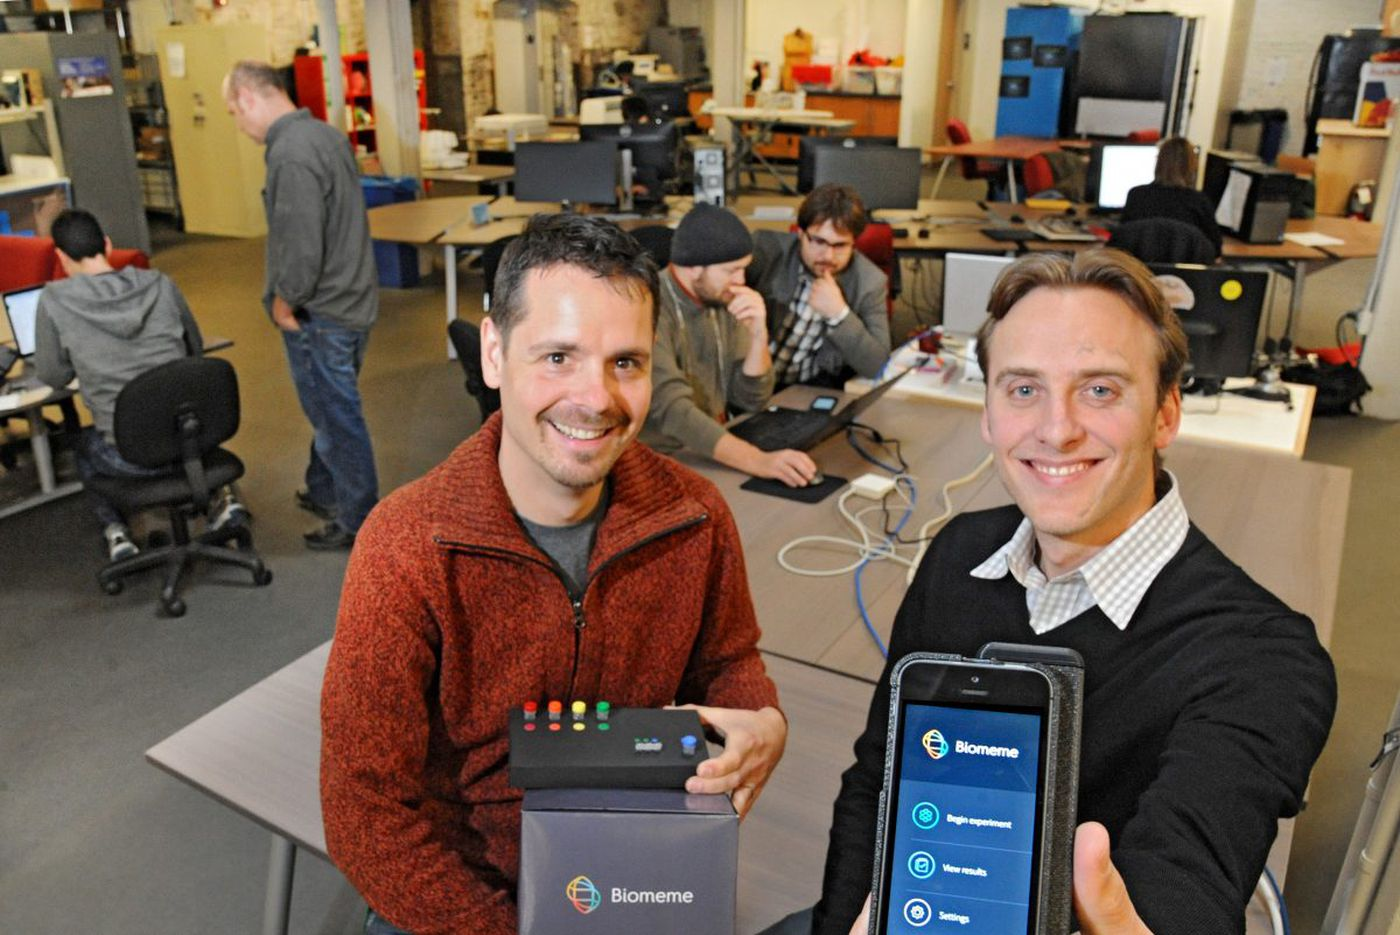 NextFab draws makers from Boston, NYC to Philly